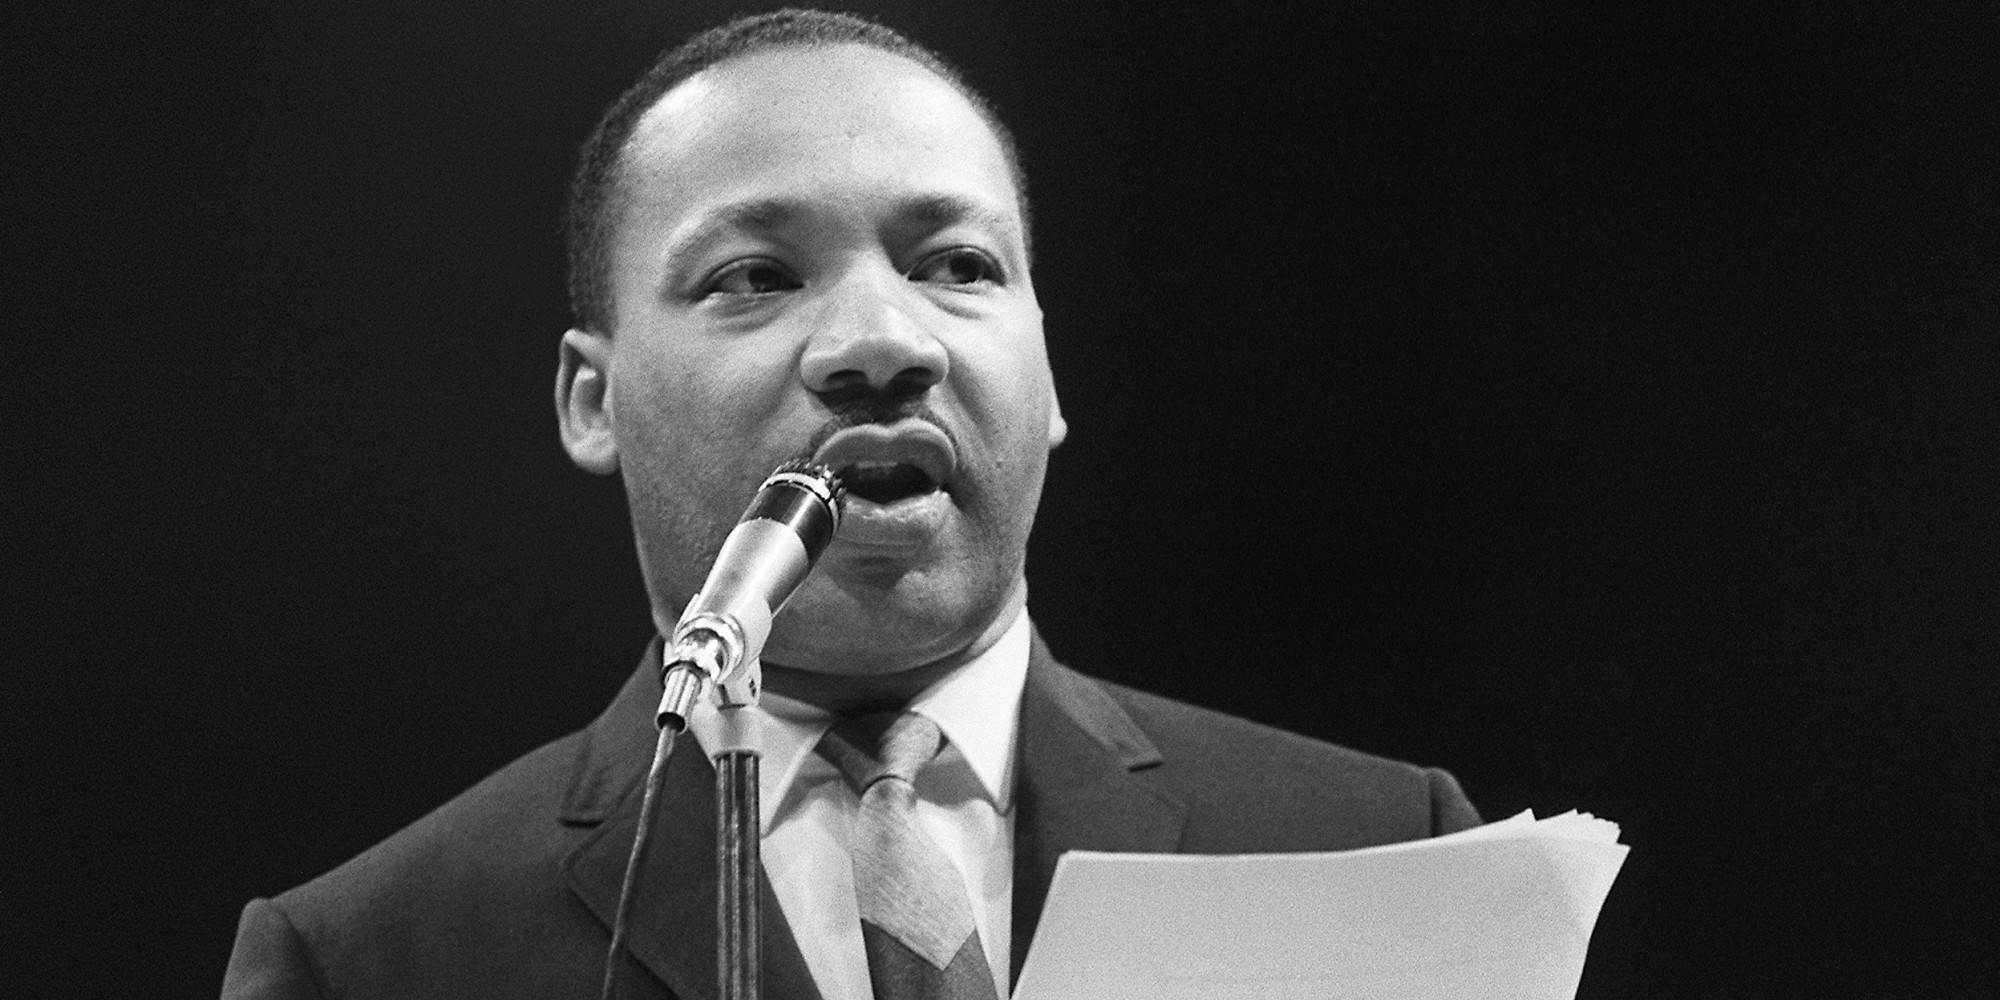 """Martin Luther King Jr. """"I Have Been To The Mountaintop"""" Speech (FULL TEXT) 